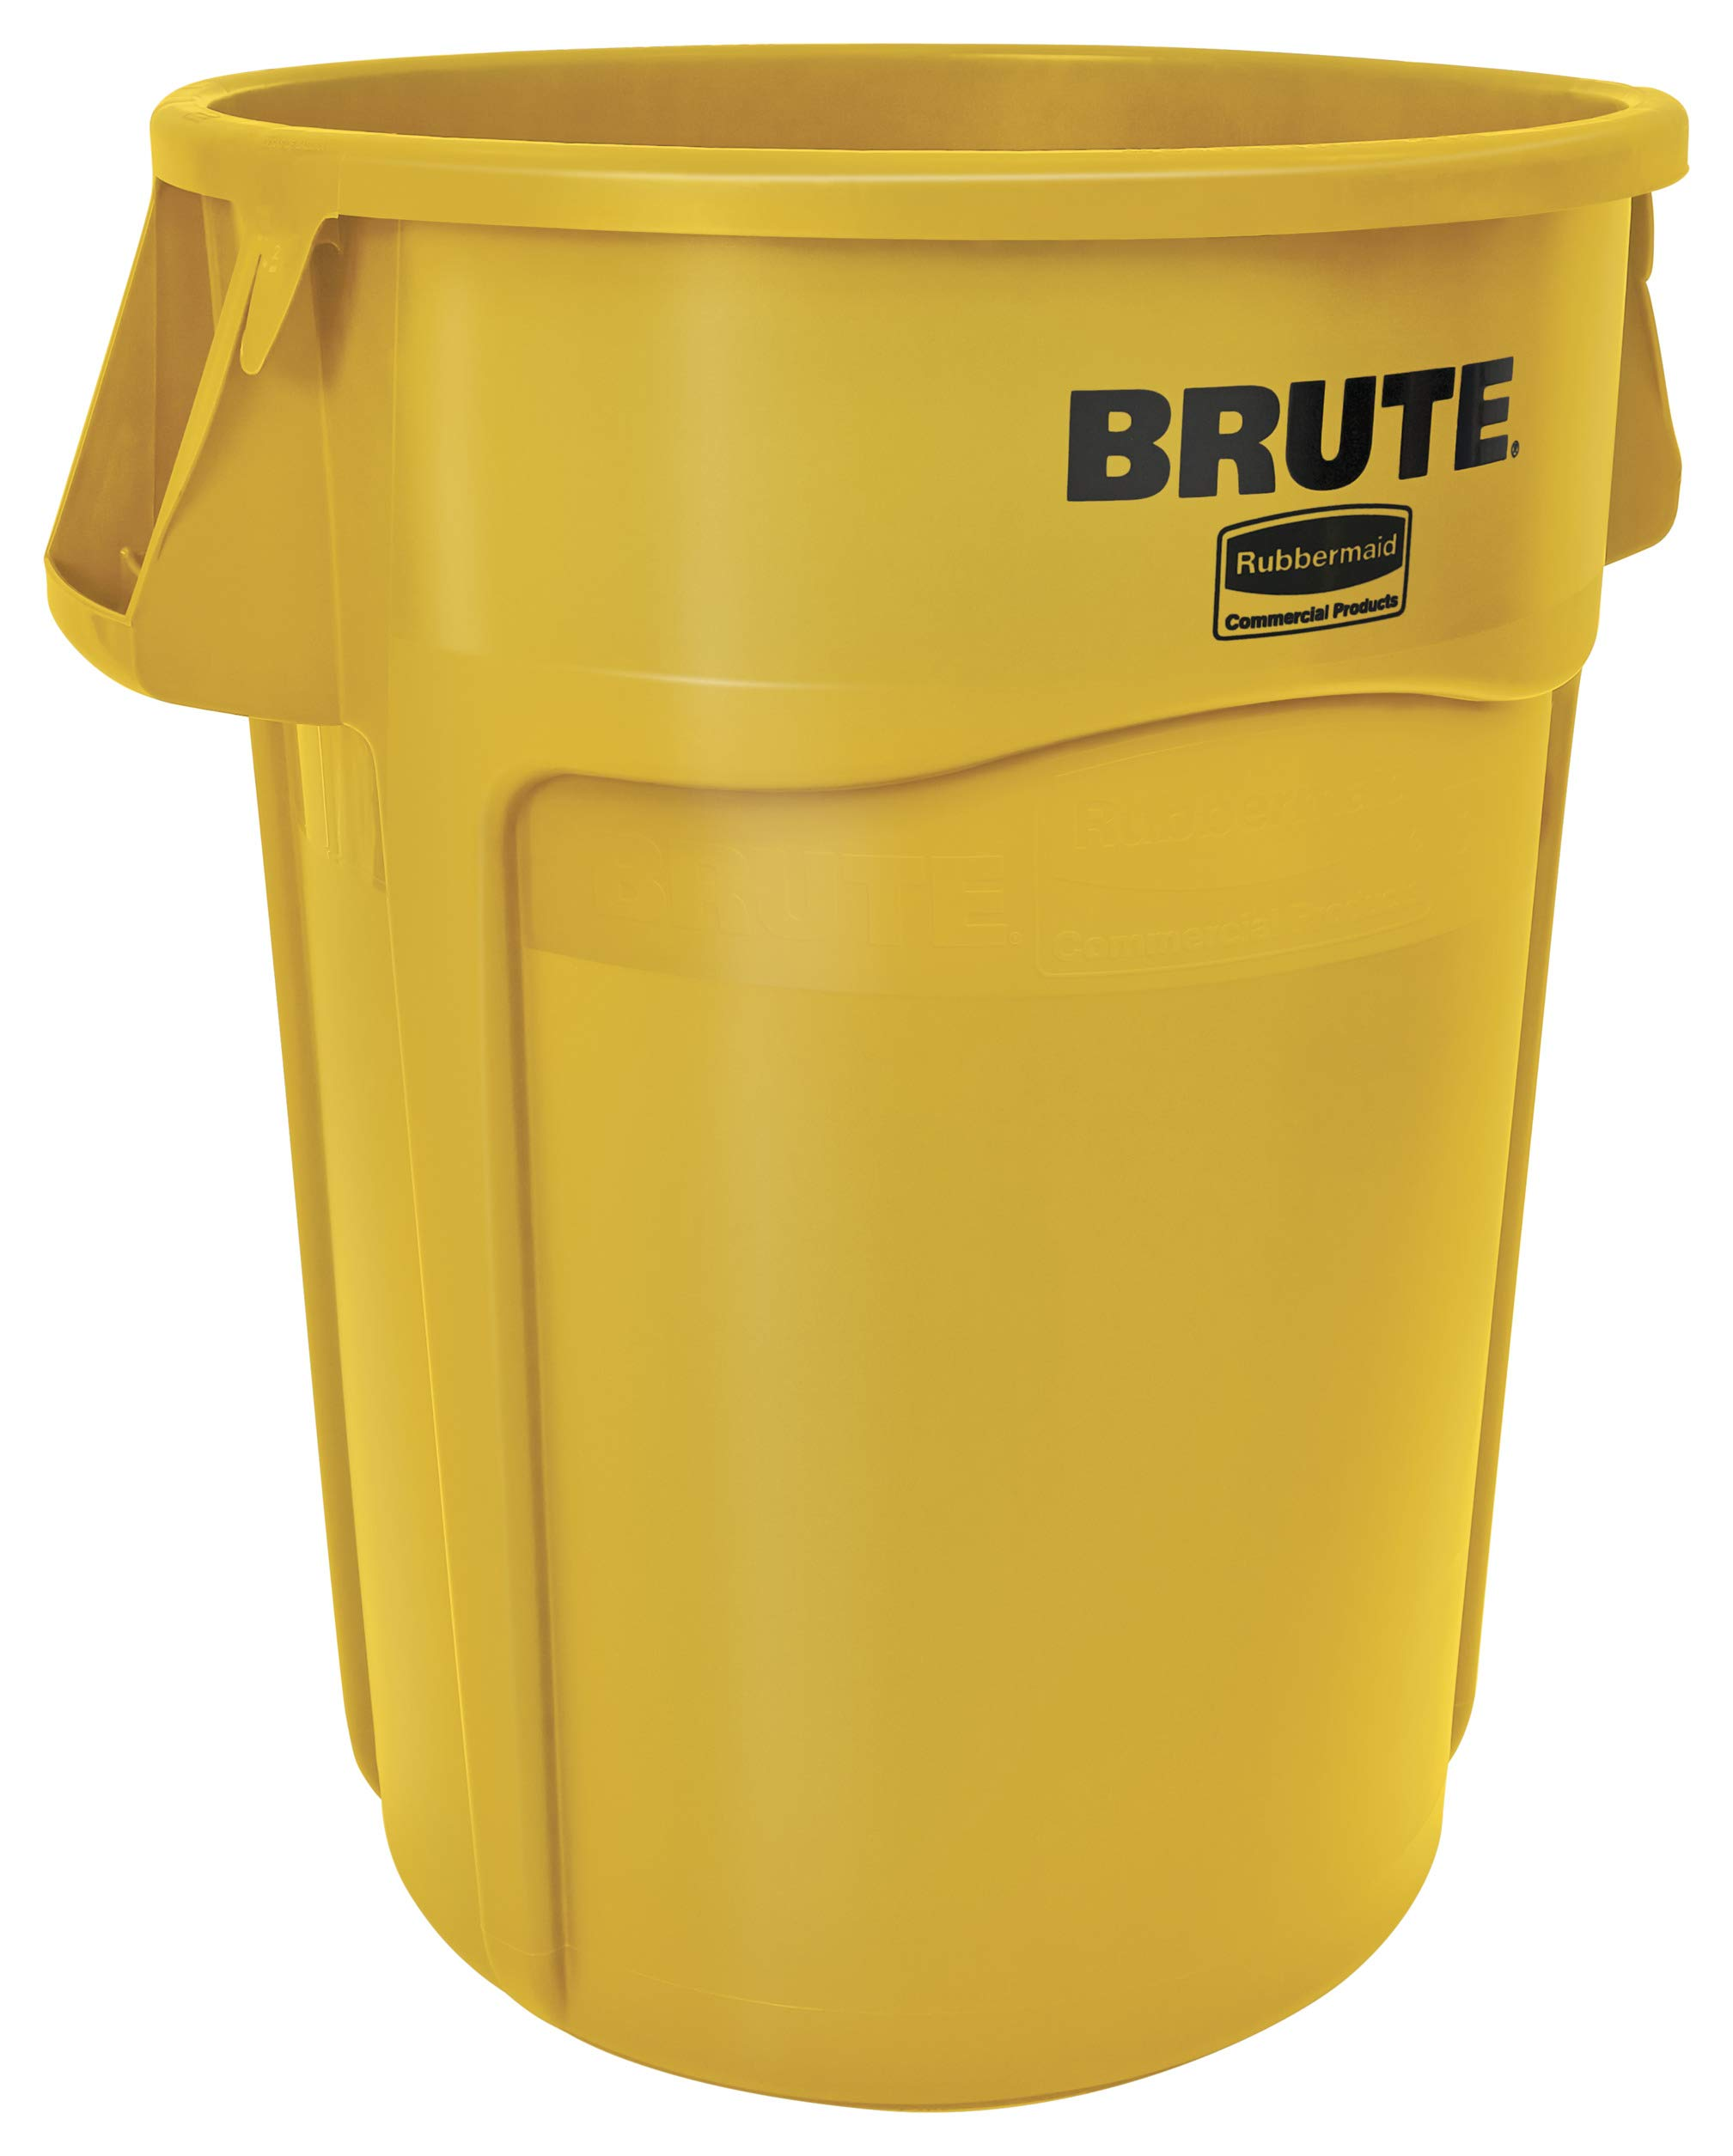 Rubbermaid Commercial Products FG264360YEL BRUTE Heavy-Duty Round Trash/Garbage Can, 44-Gallon, Yellow